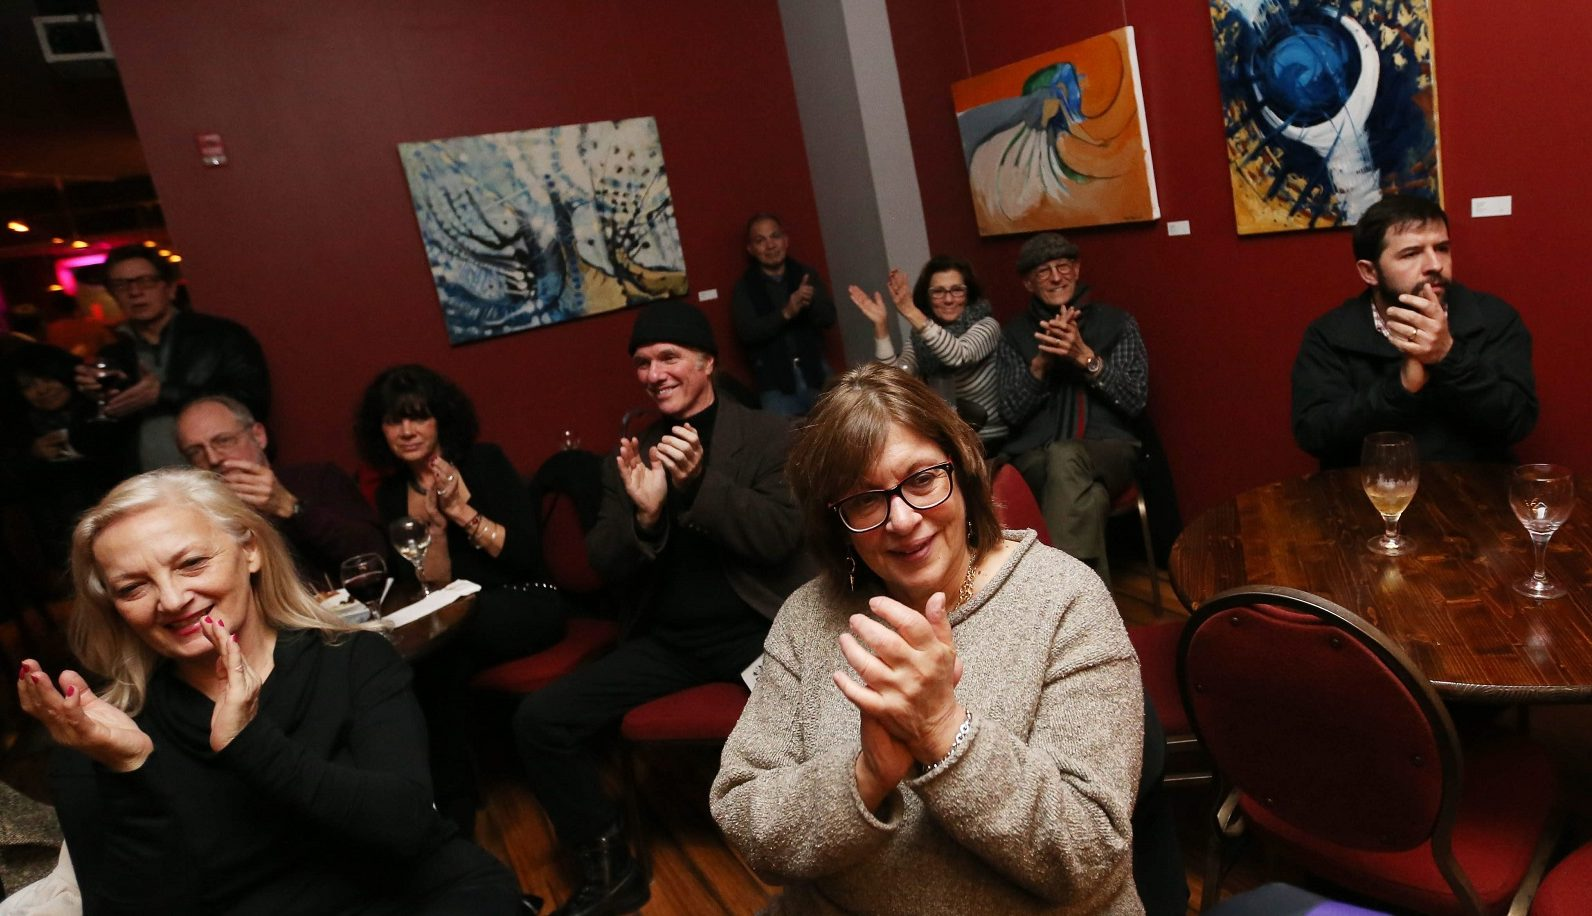 Art hangs from the walls of Pausa Art House during a show in January. (Sharon Cantillon/Buffalo News)